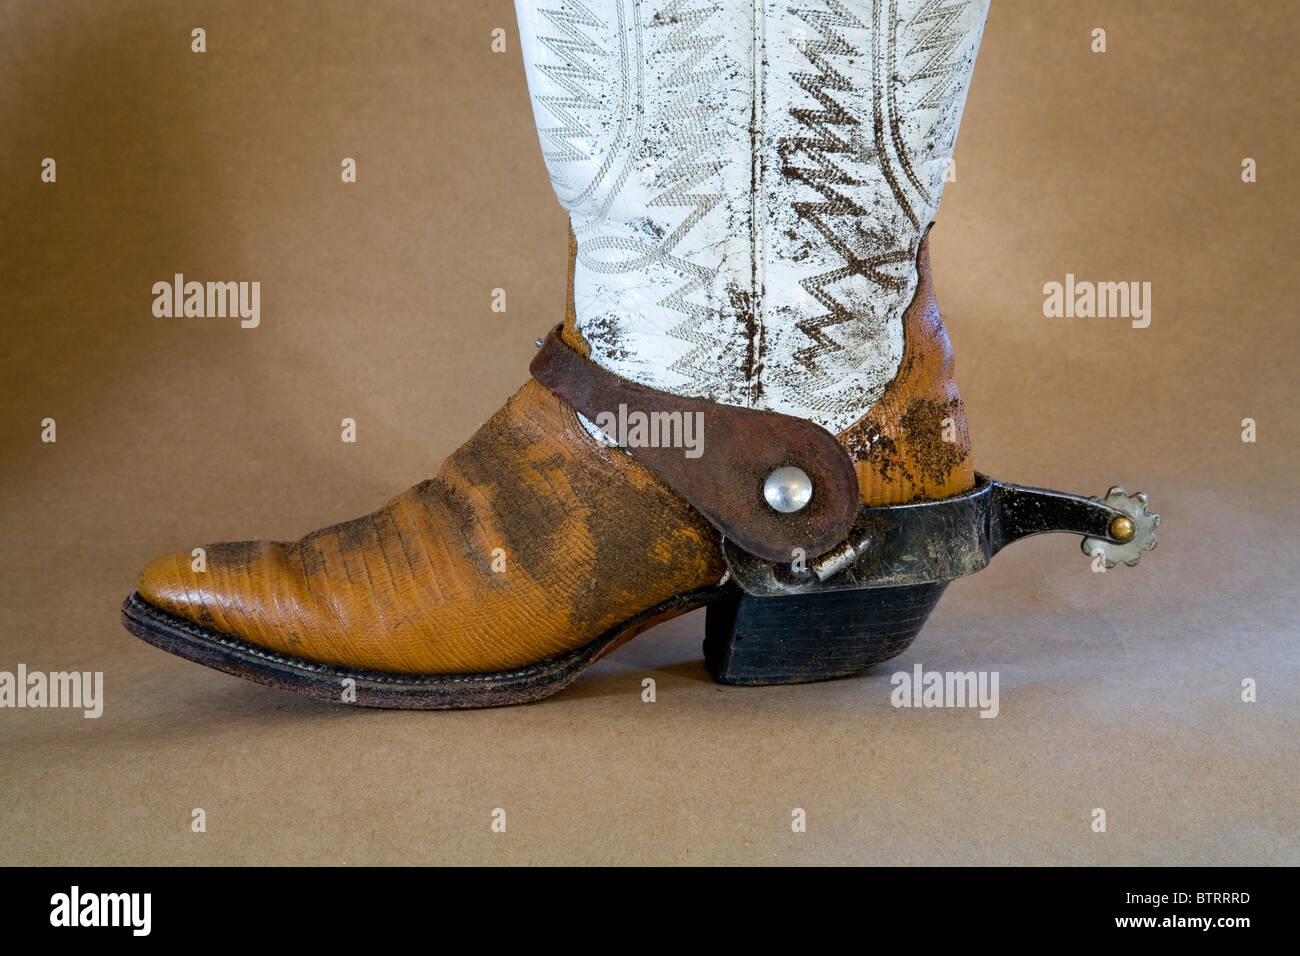 Well worn cowboy boots and spurs - Stock Image